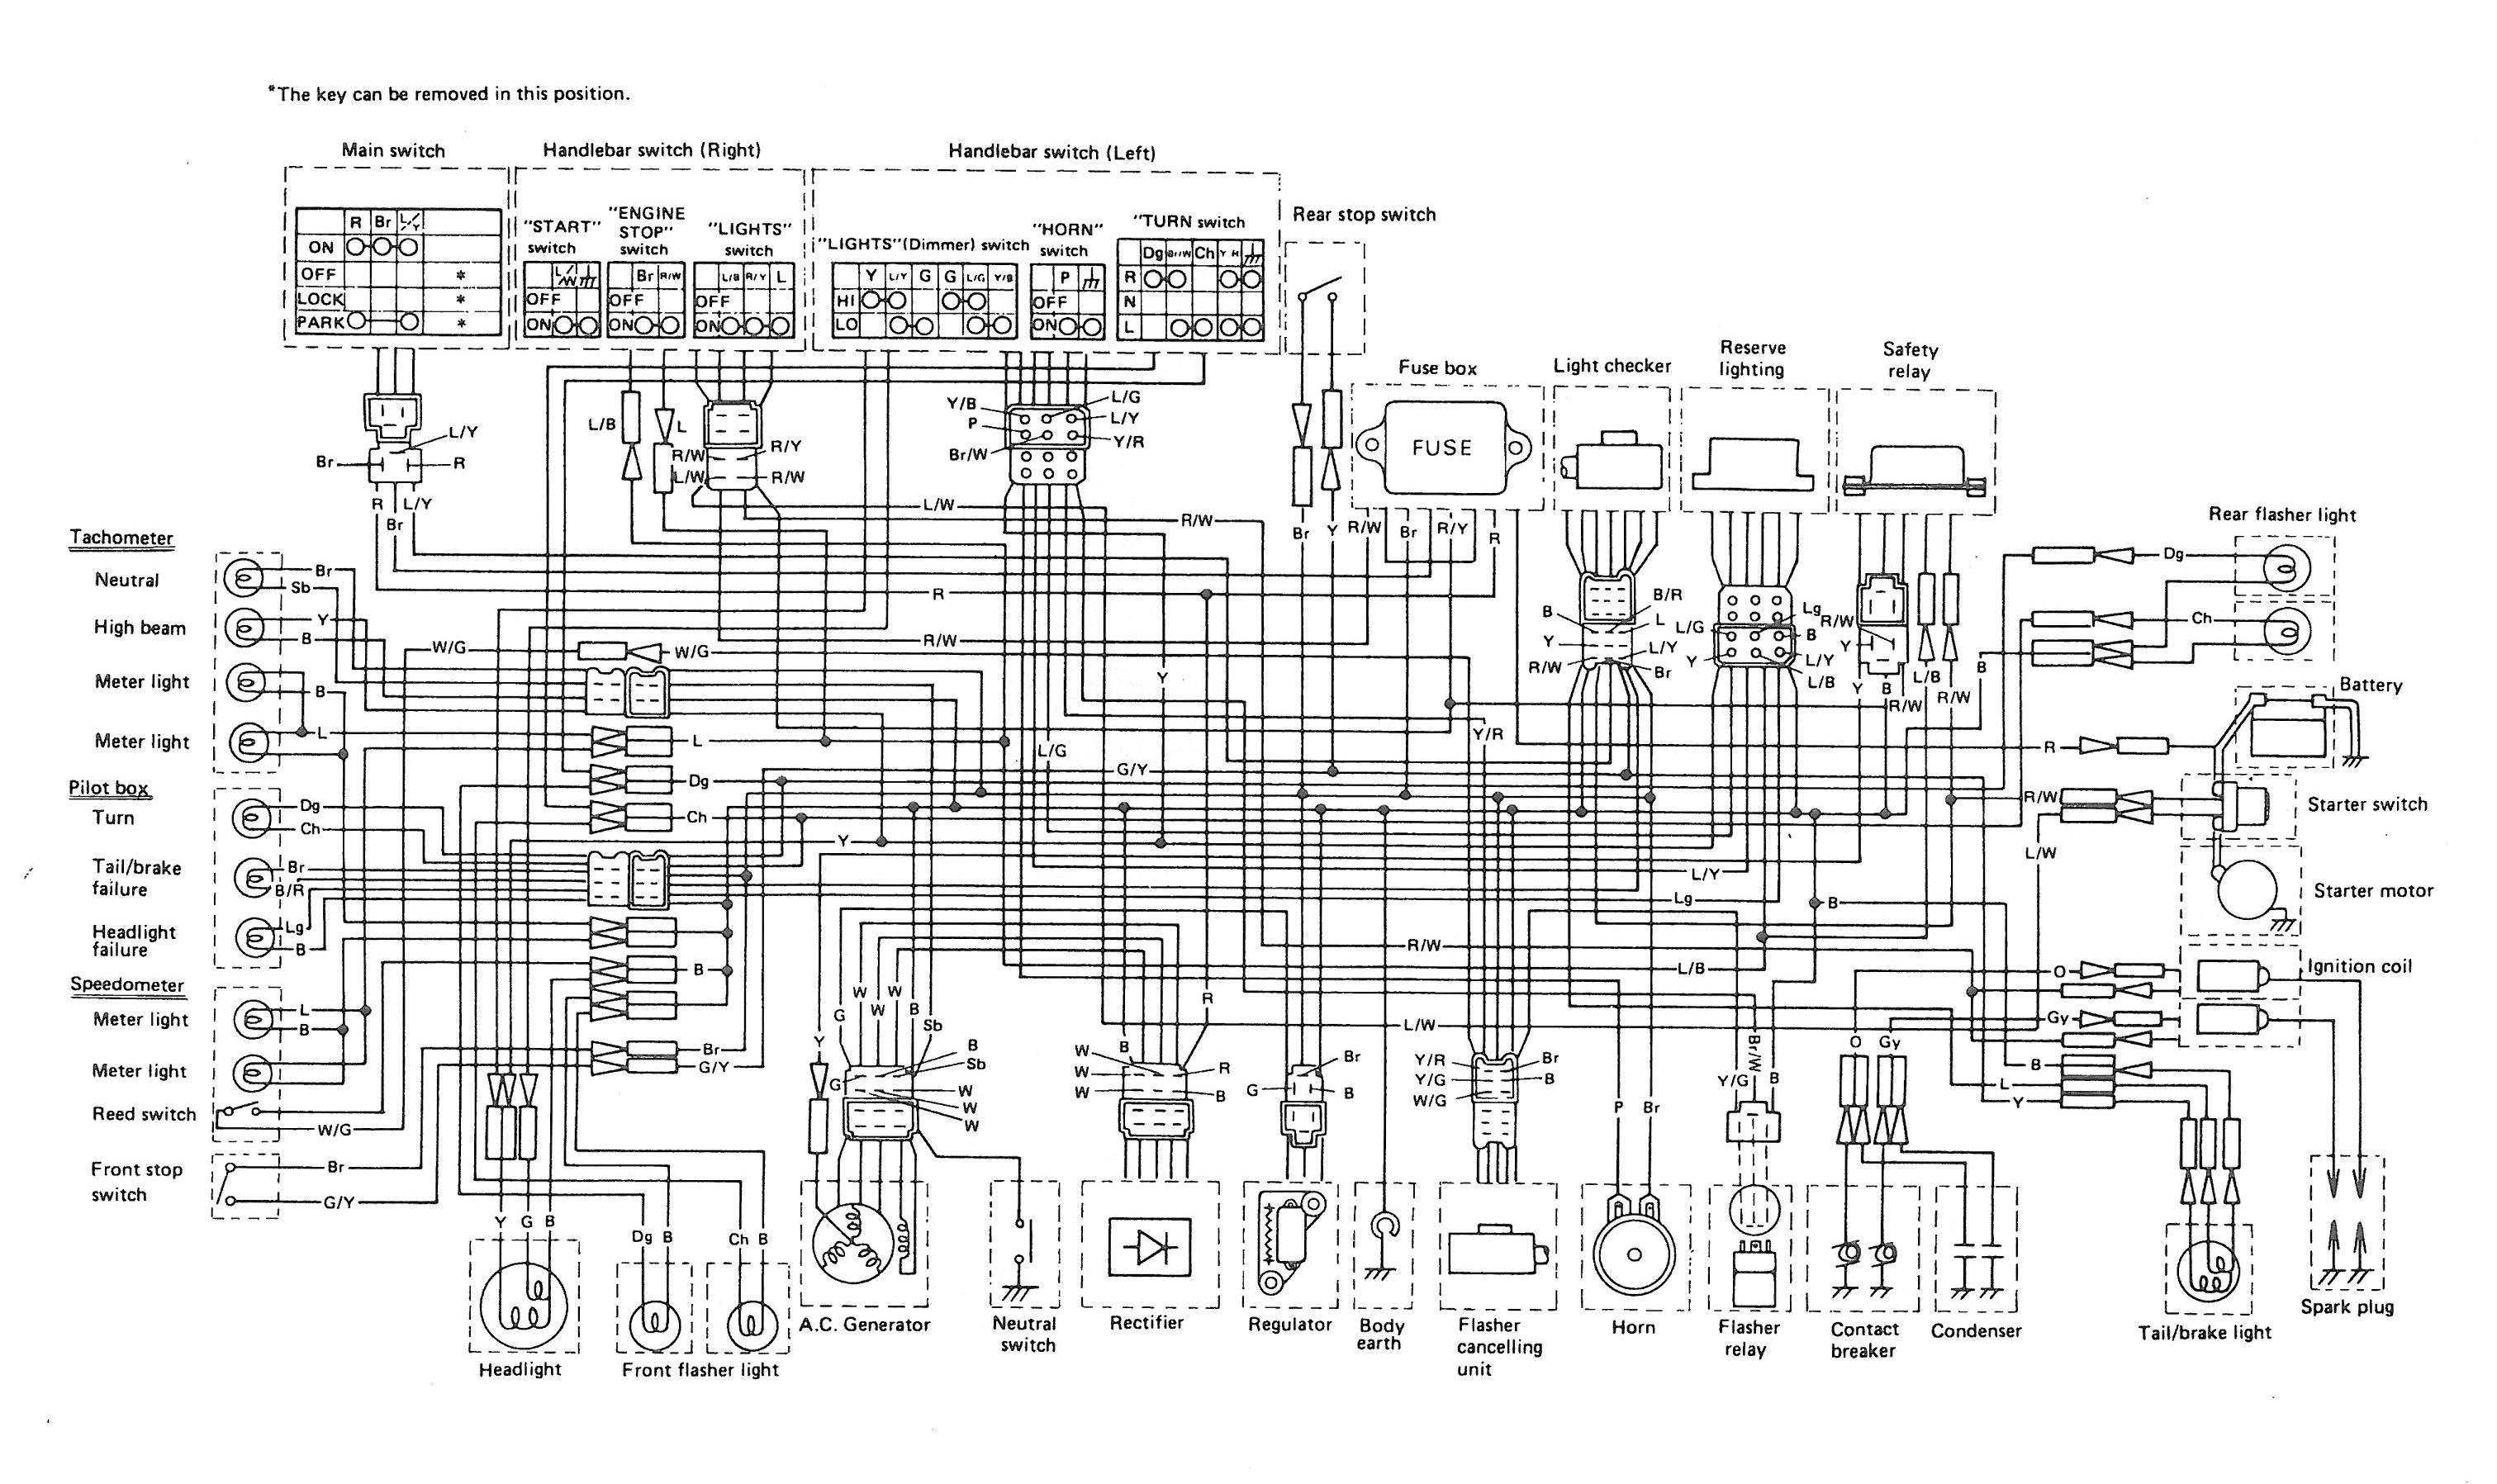 78 xsse wiring 6 1 yamaha xs400 wiring diagram yamaha rd200 wiring diagram \u2022 free 1979 Yamaha It 400 Enduro at edmiracle.co